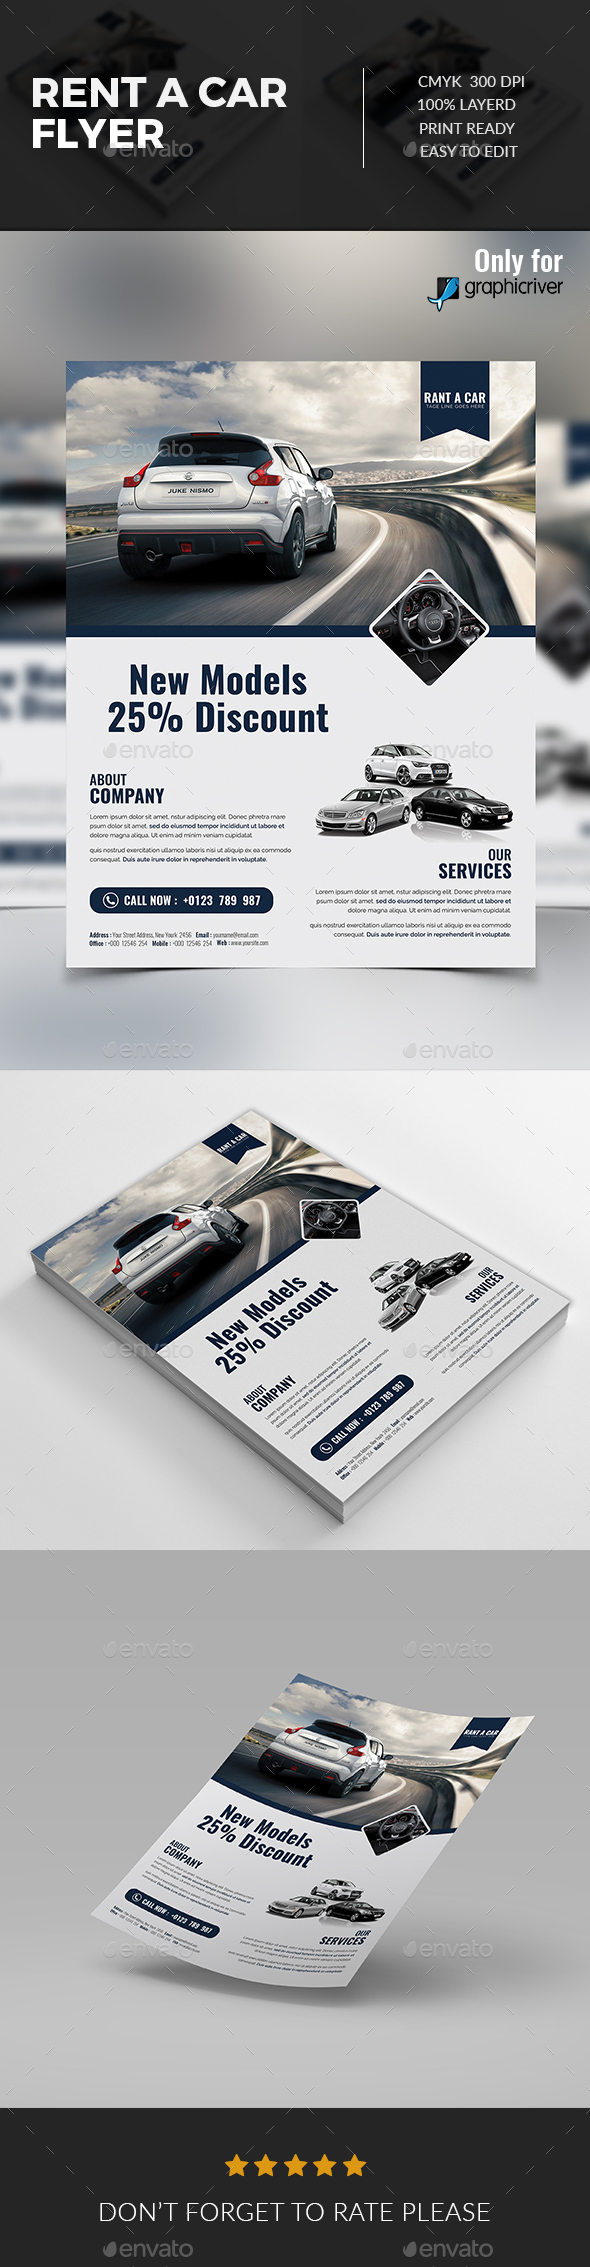 rent a car flyer cars creative and colors rent a car flyer template psd design graphicriver